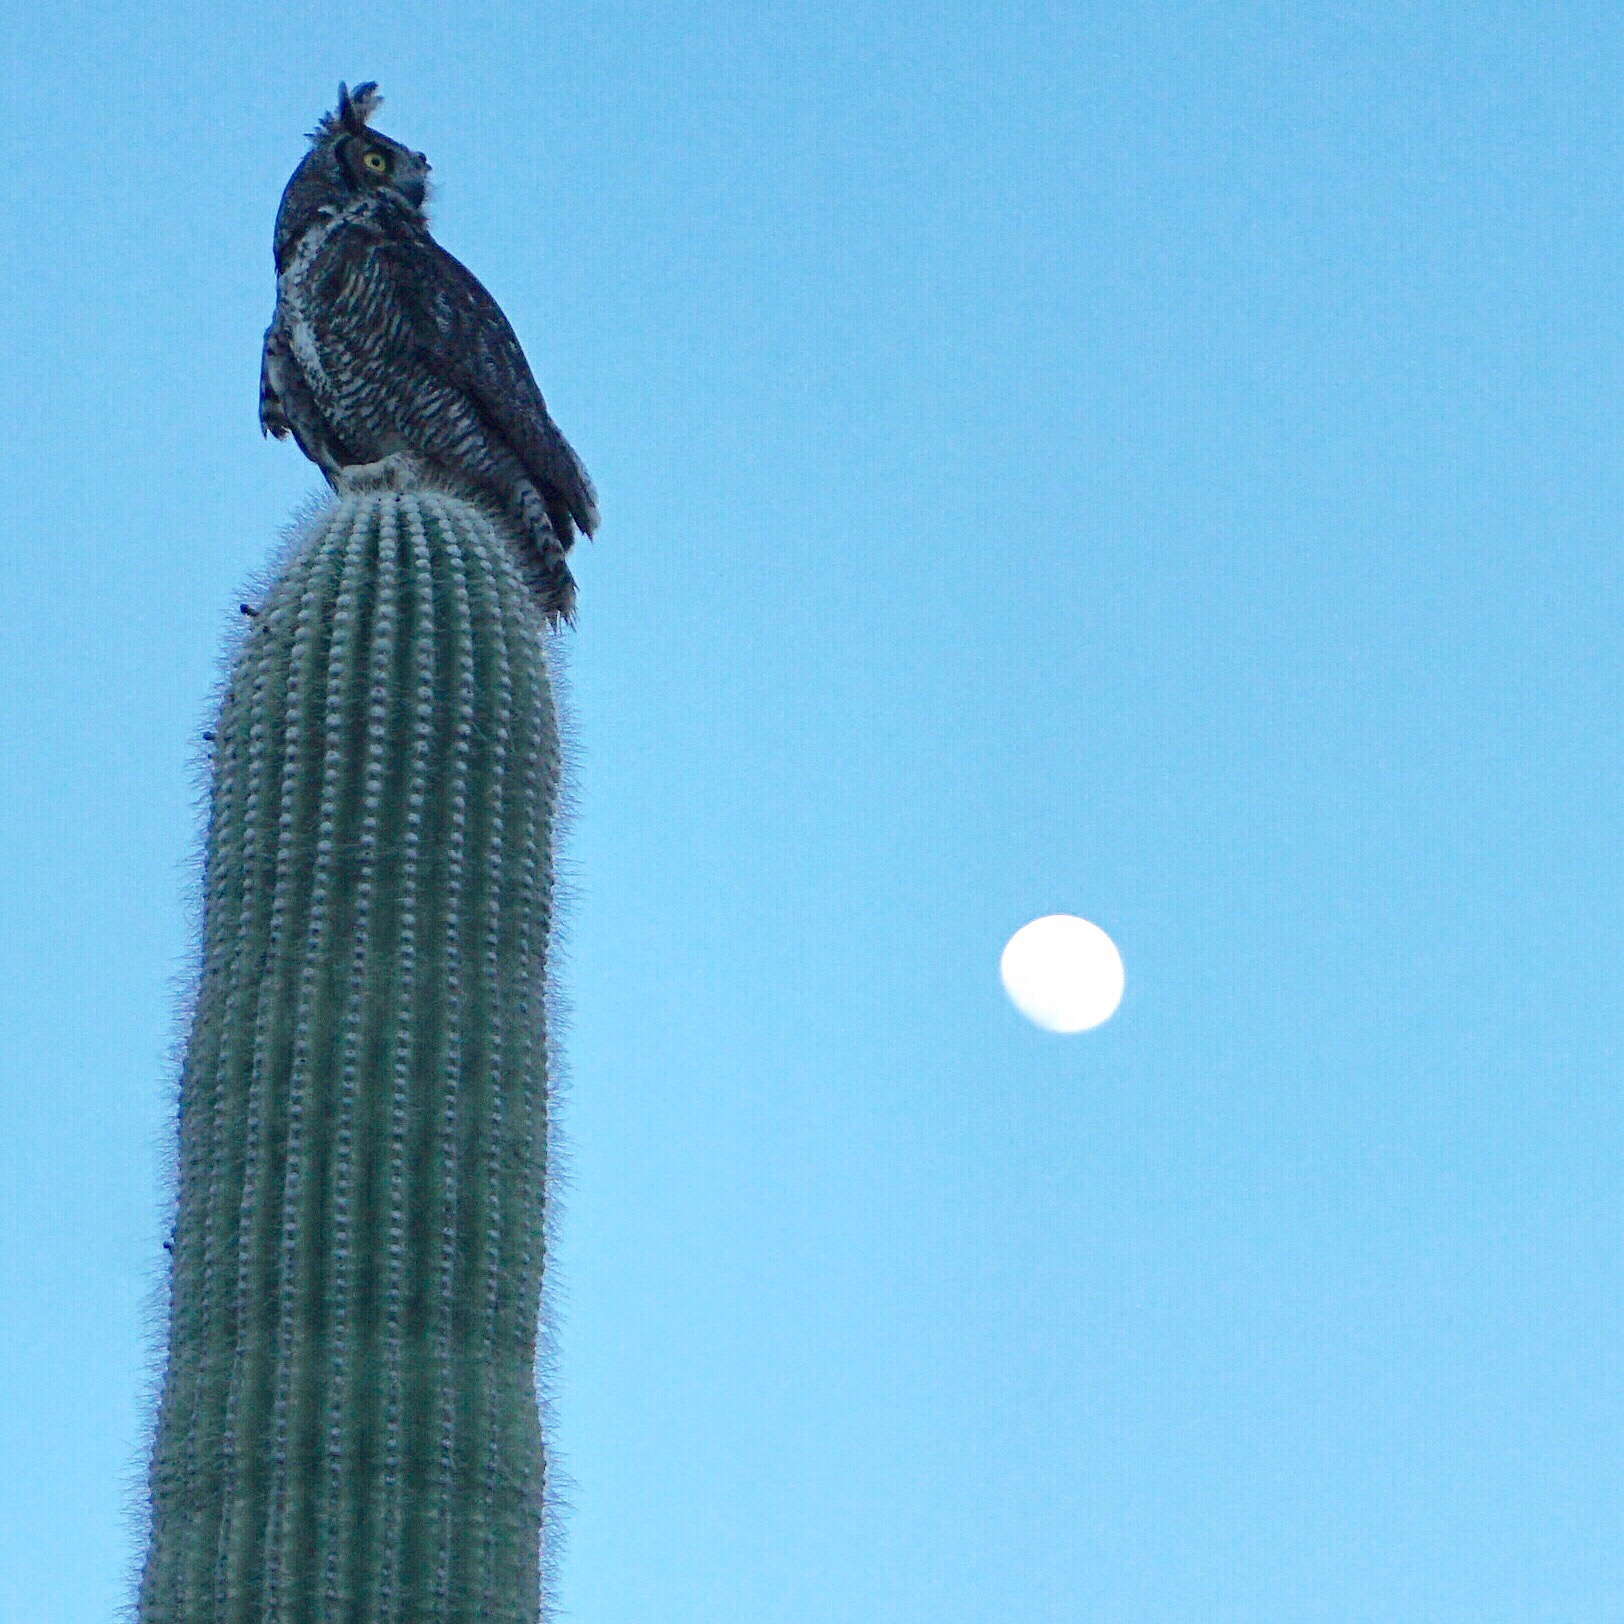 An owl sits atop a Saguaro cactus with the moon visible